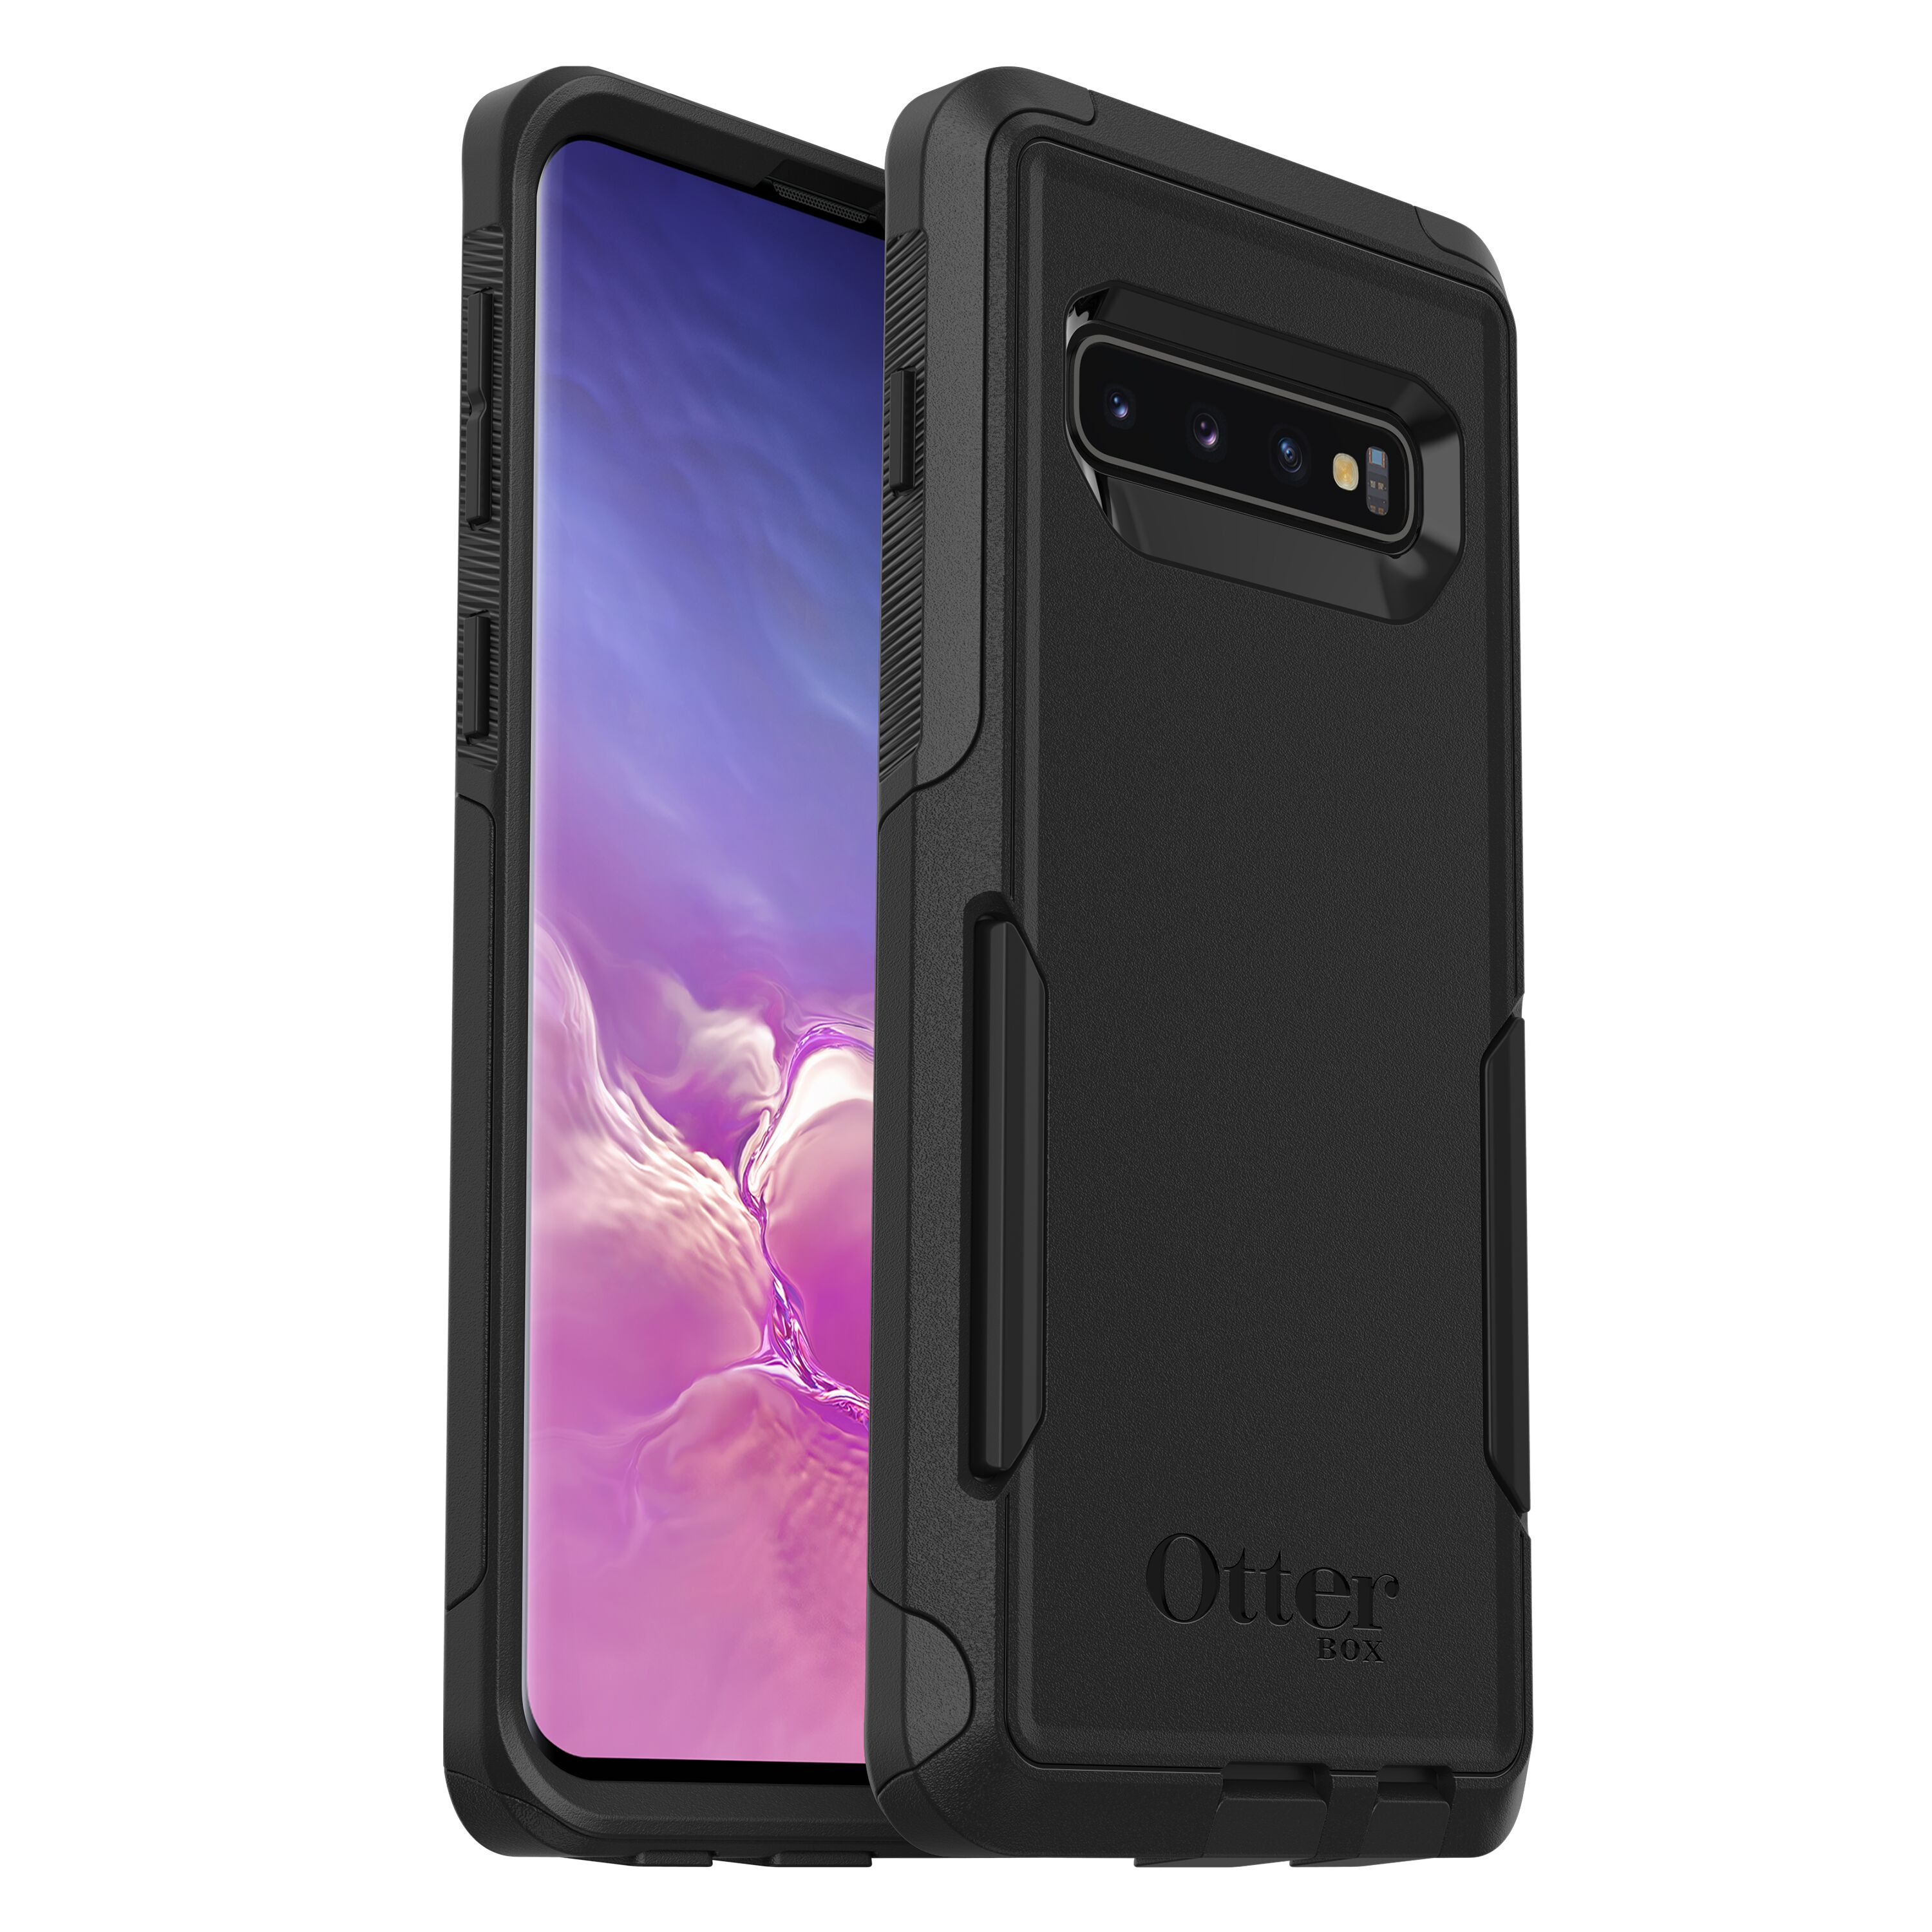 Otterbox: The Commuter